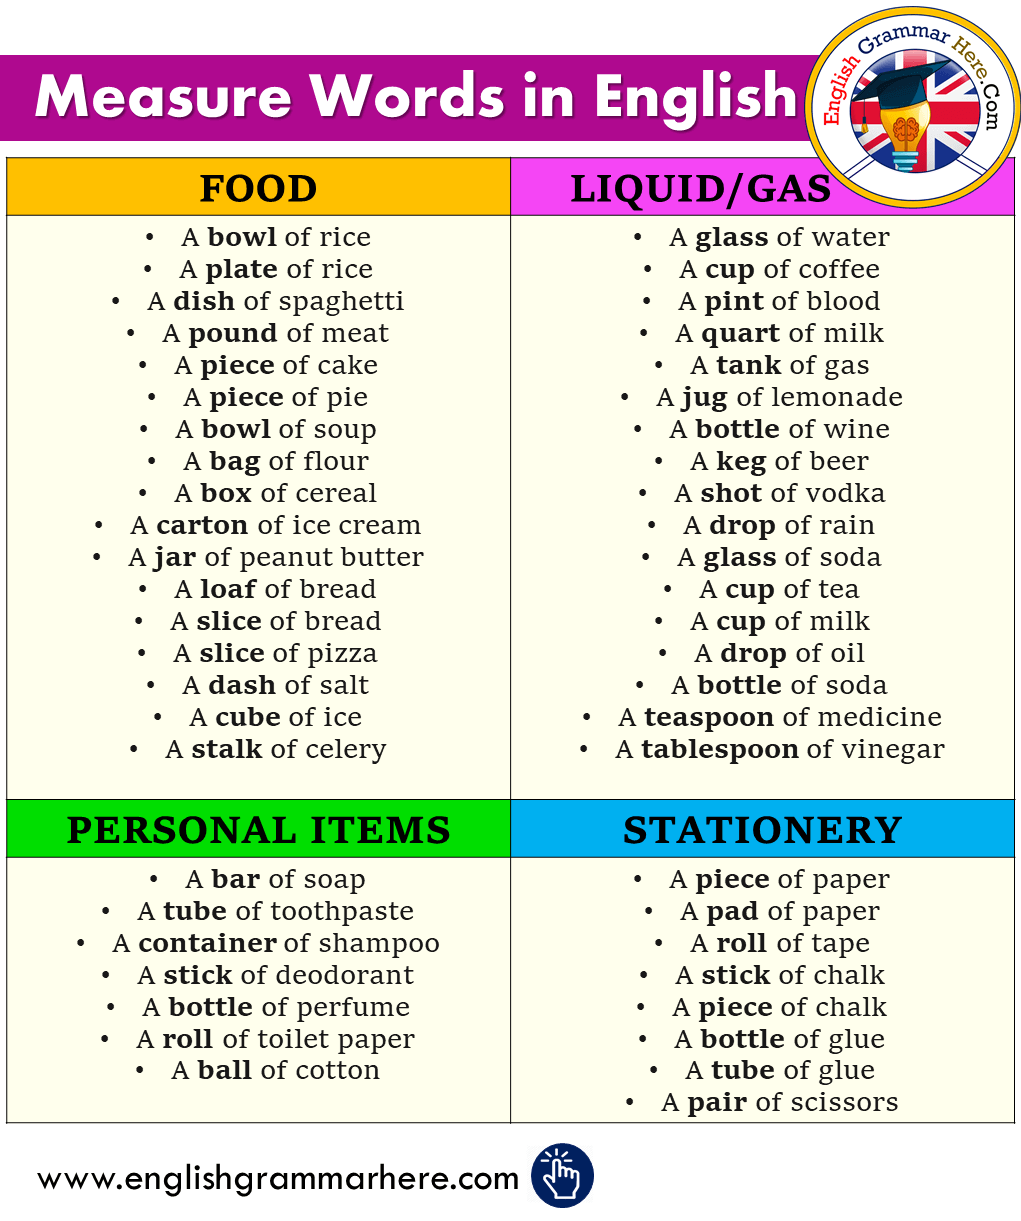 English Measure Words List About Food, Liquid,Gas, Personal Items, Stationery